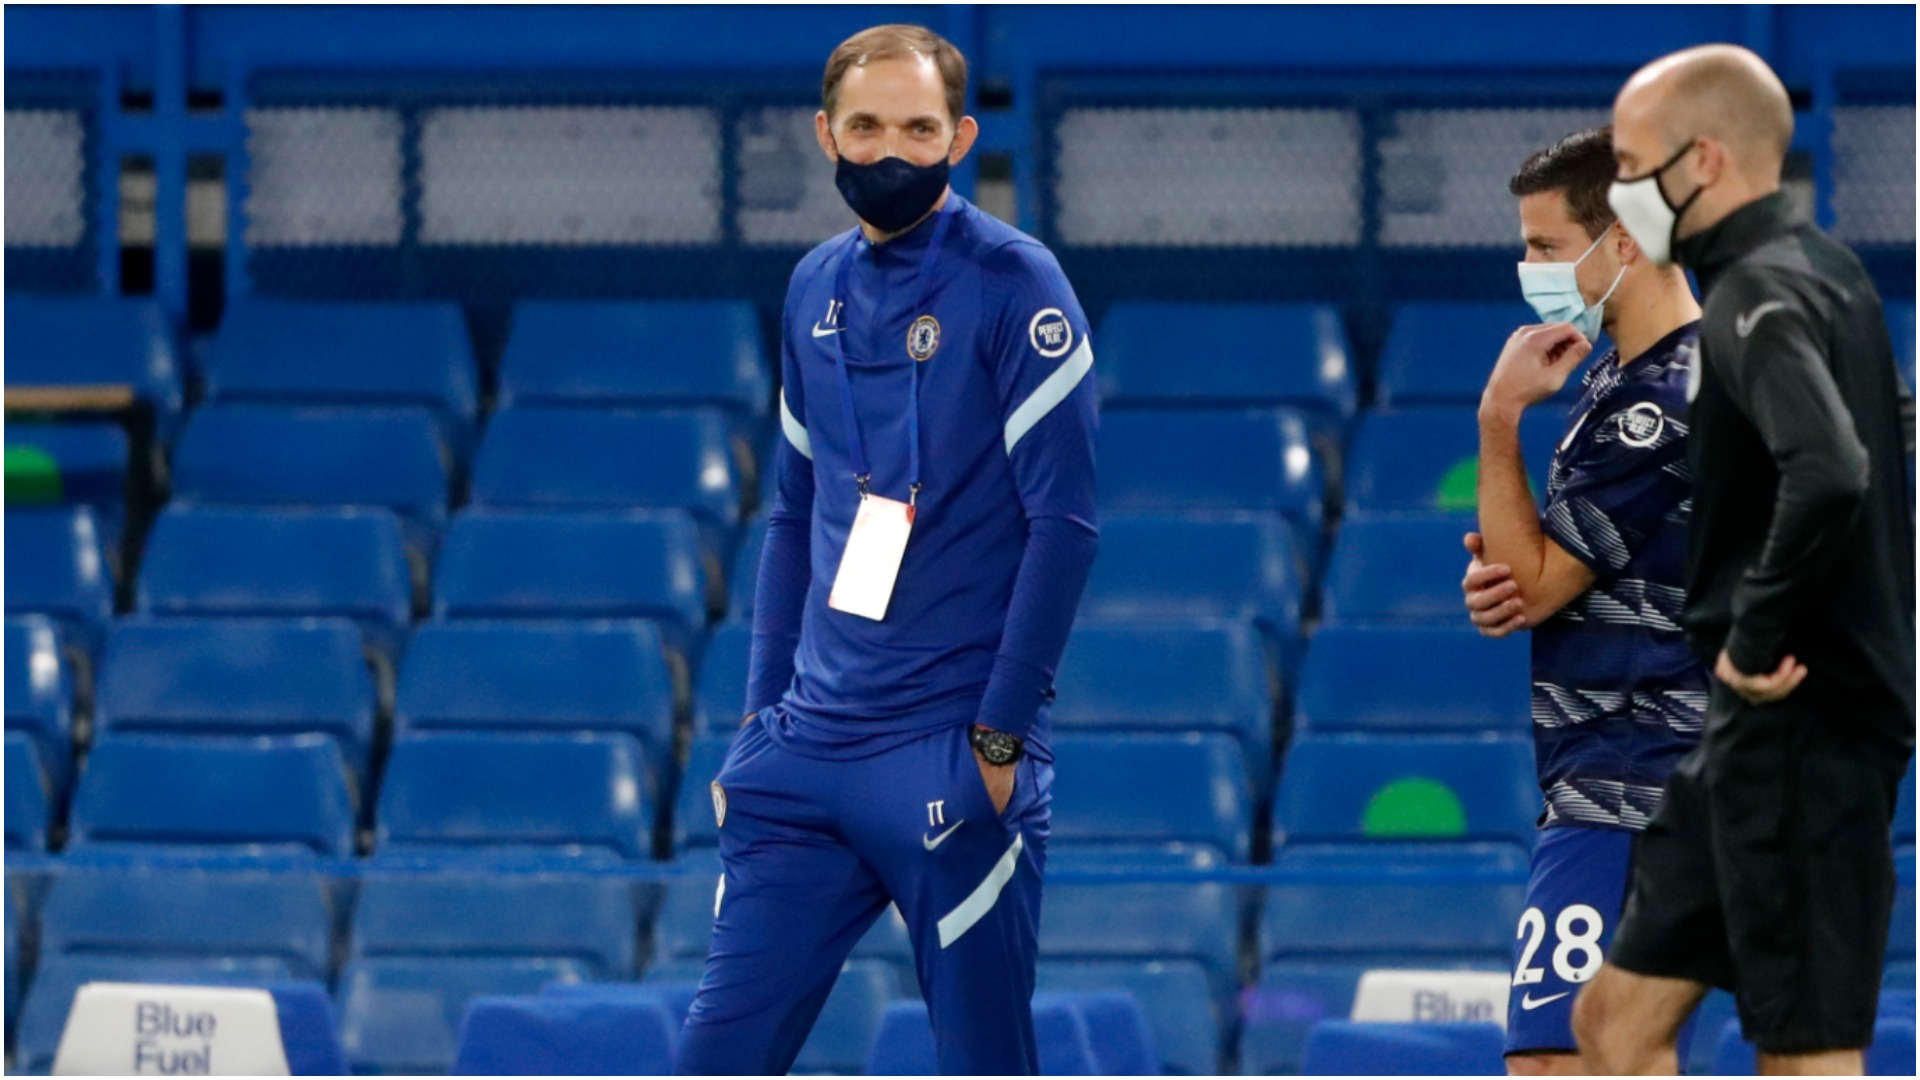 Chelsea v Wolves: Tuchel opts for Jorginho and Giroud as Mount, Werner are benched